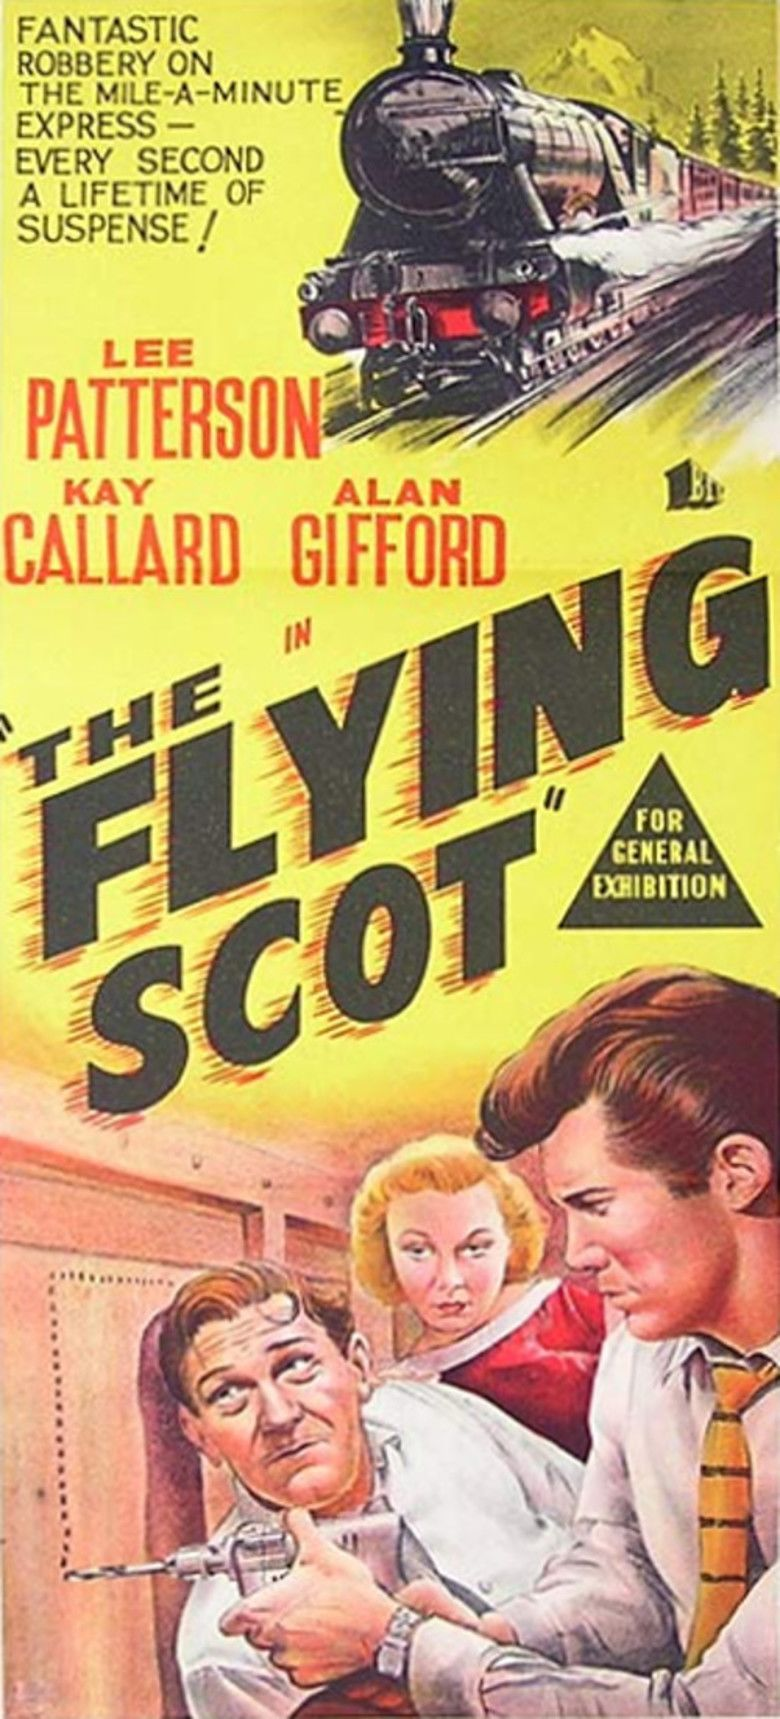 The Flying Scot (film) movie poster